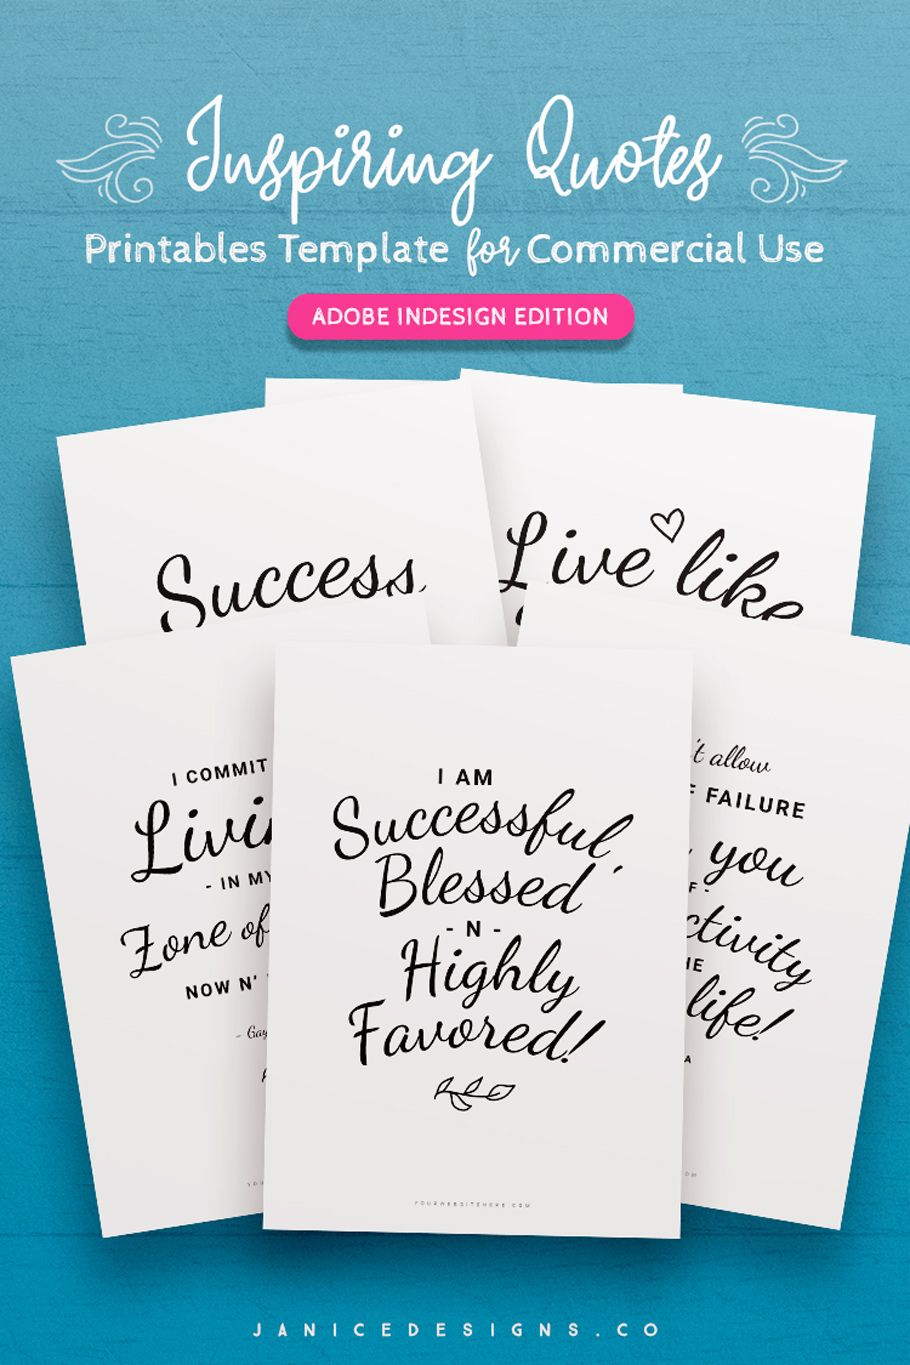 Inspiring Quotes Printables InDesign Template For